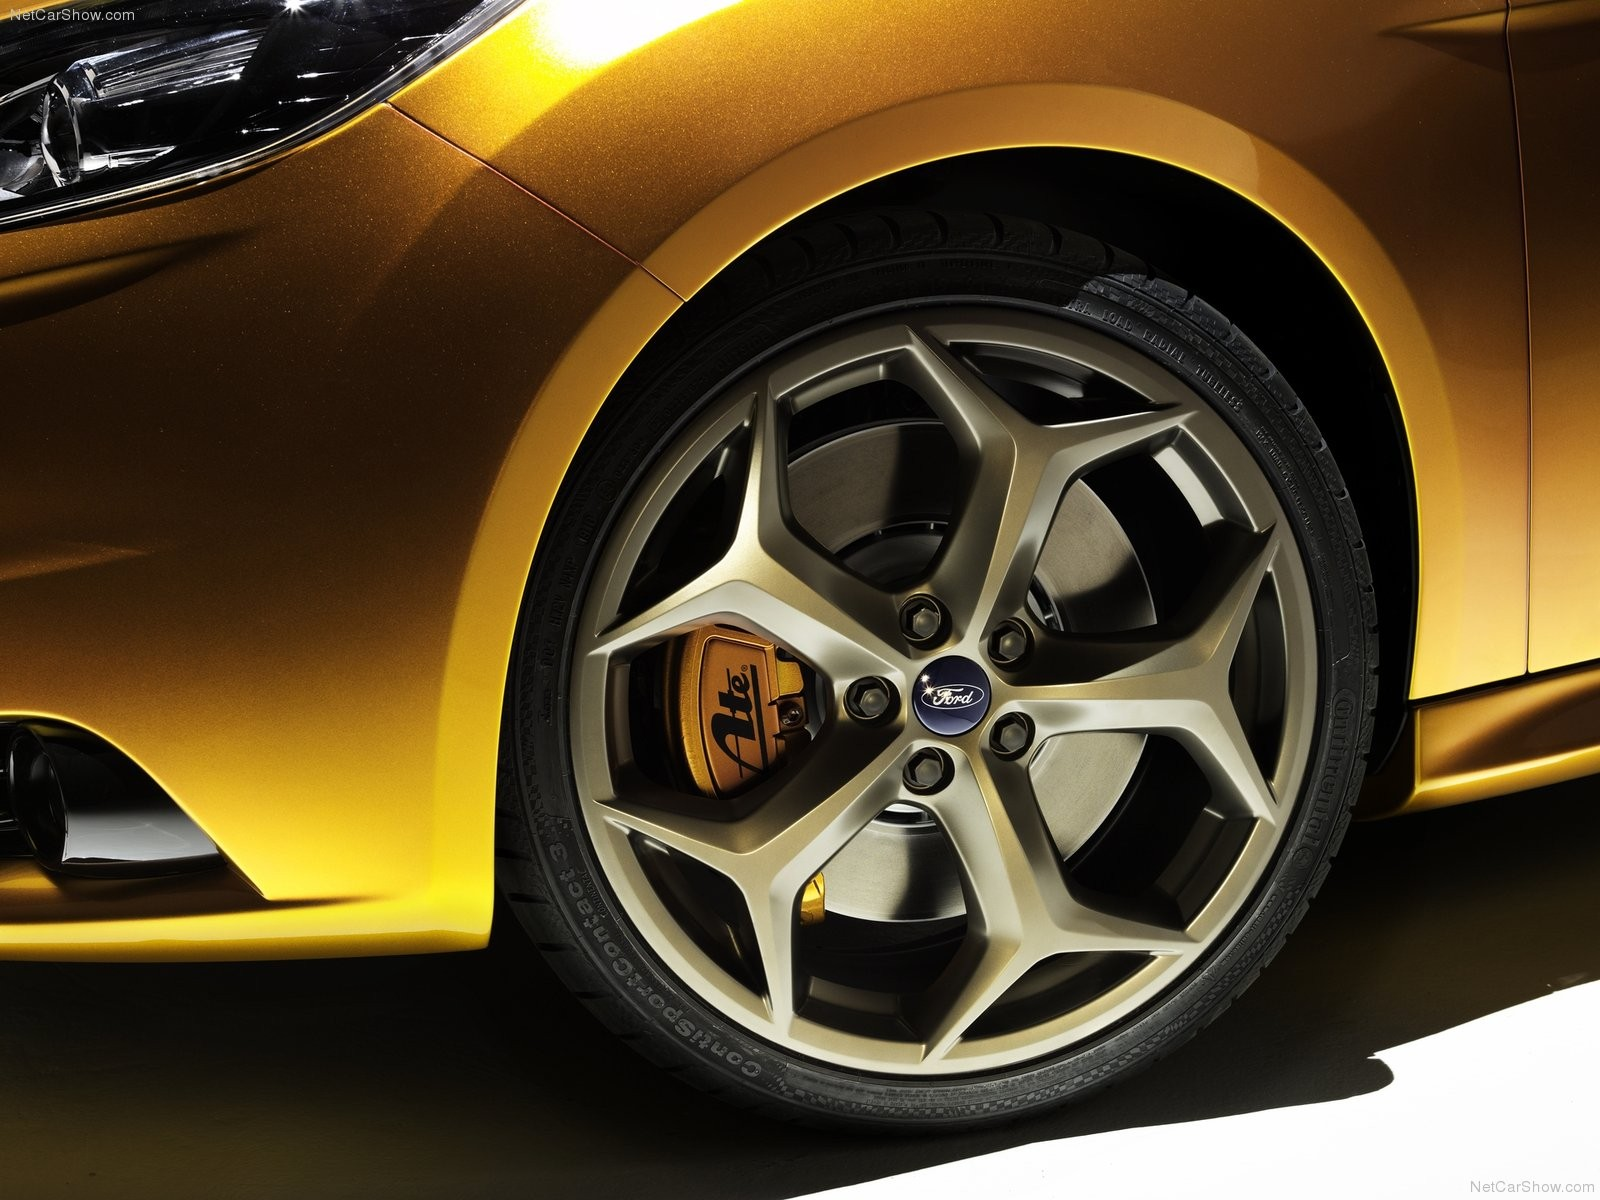 Ford Focus St Line Forum >> Cars gold wheels Ford Focus Ford Focus ST wallpaper | 1600x1200 | 53978 | WallpaperUP